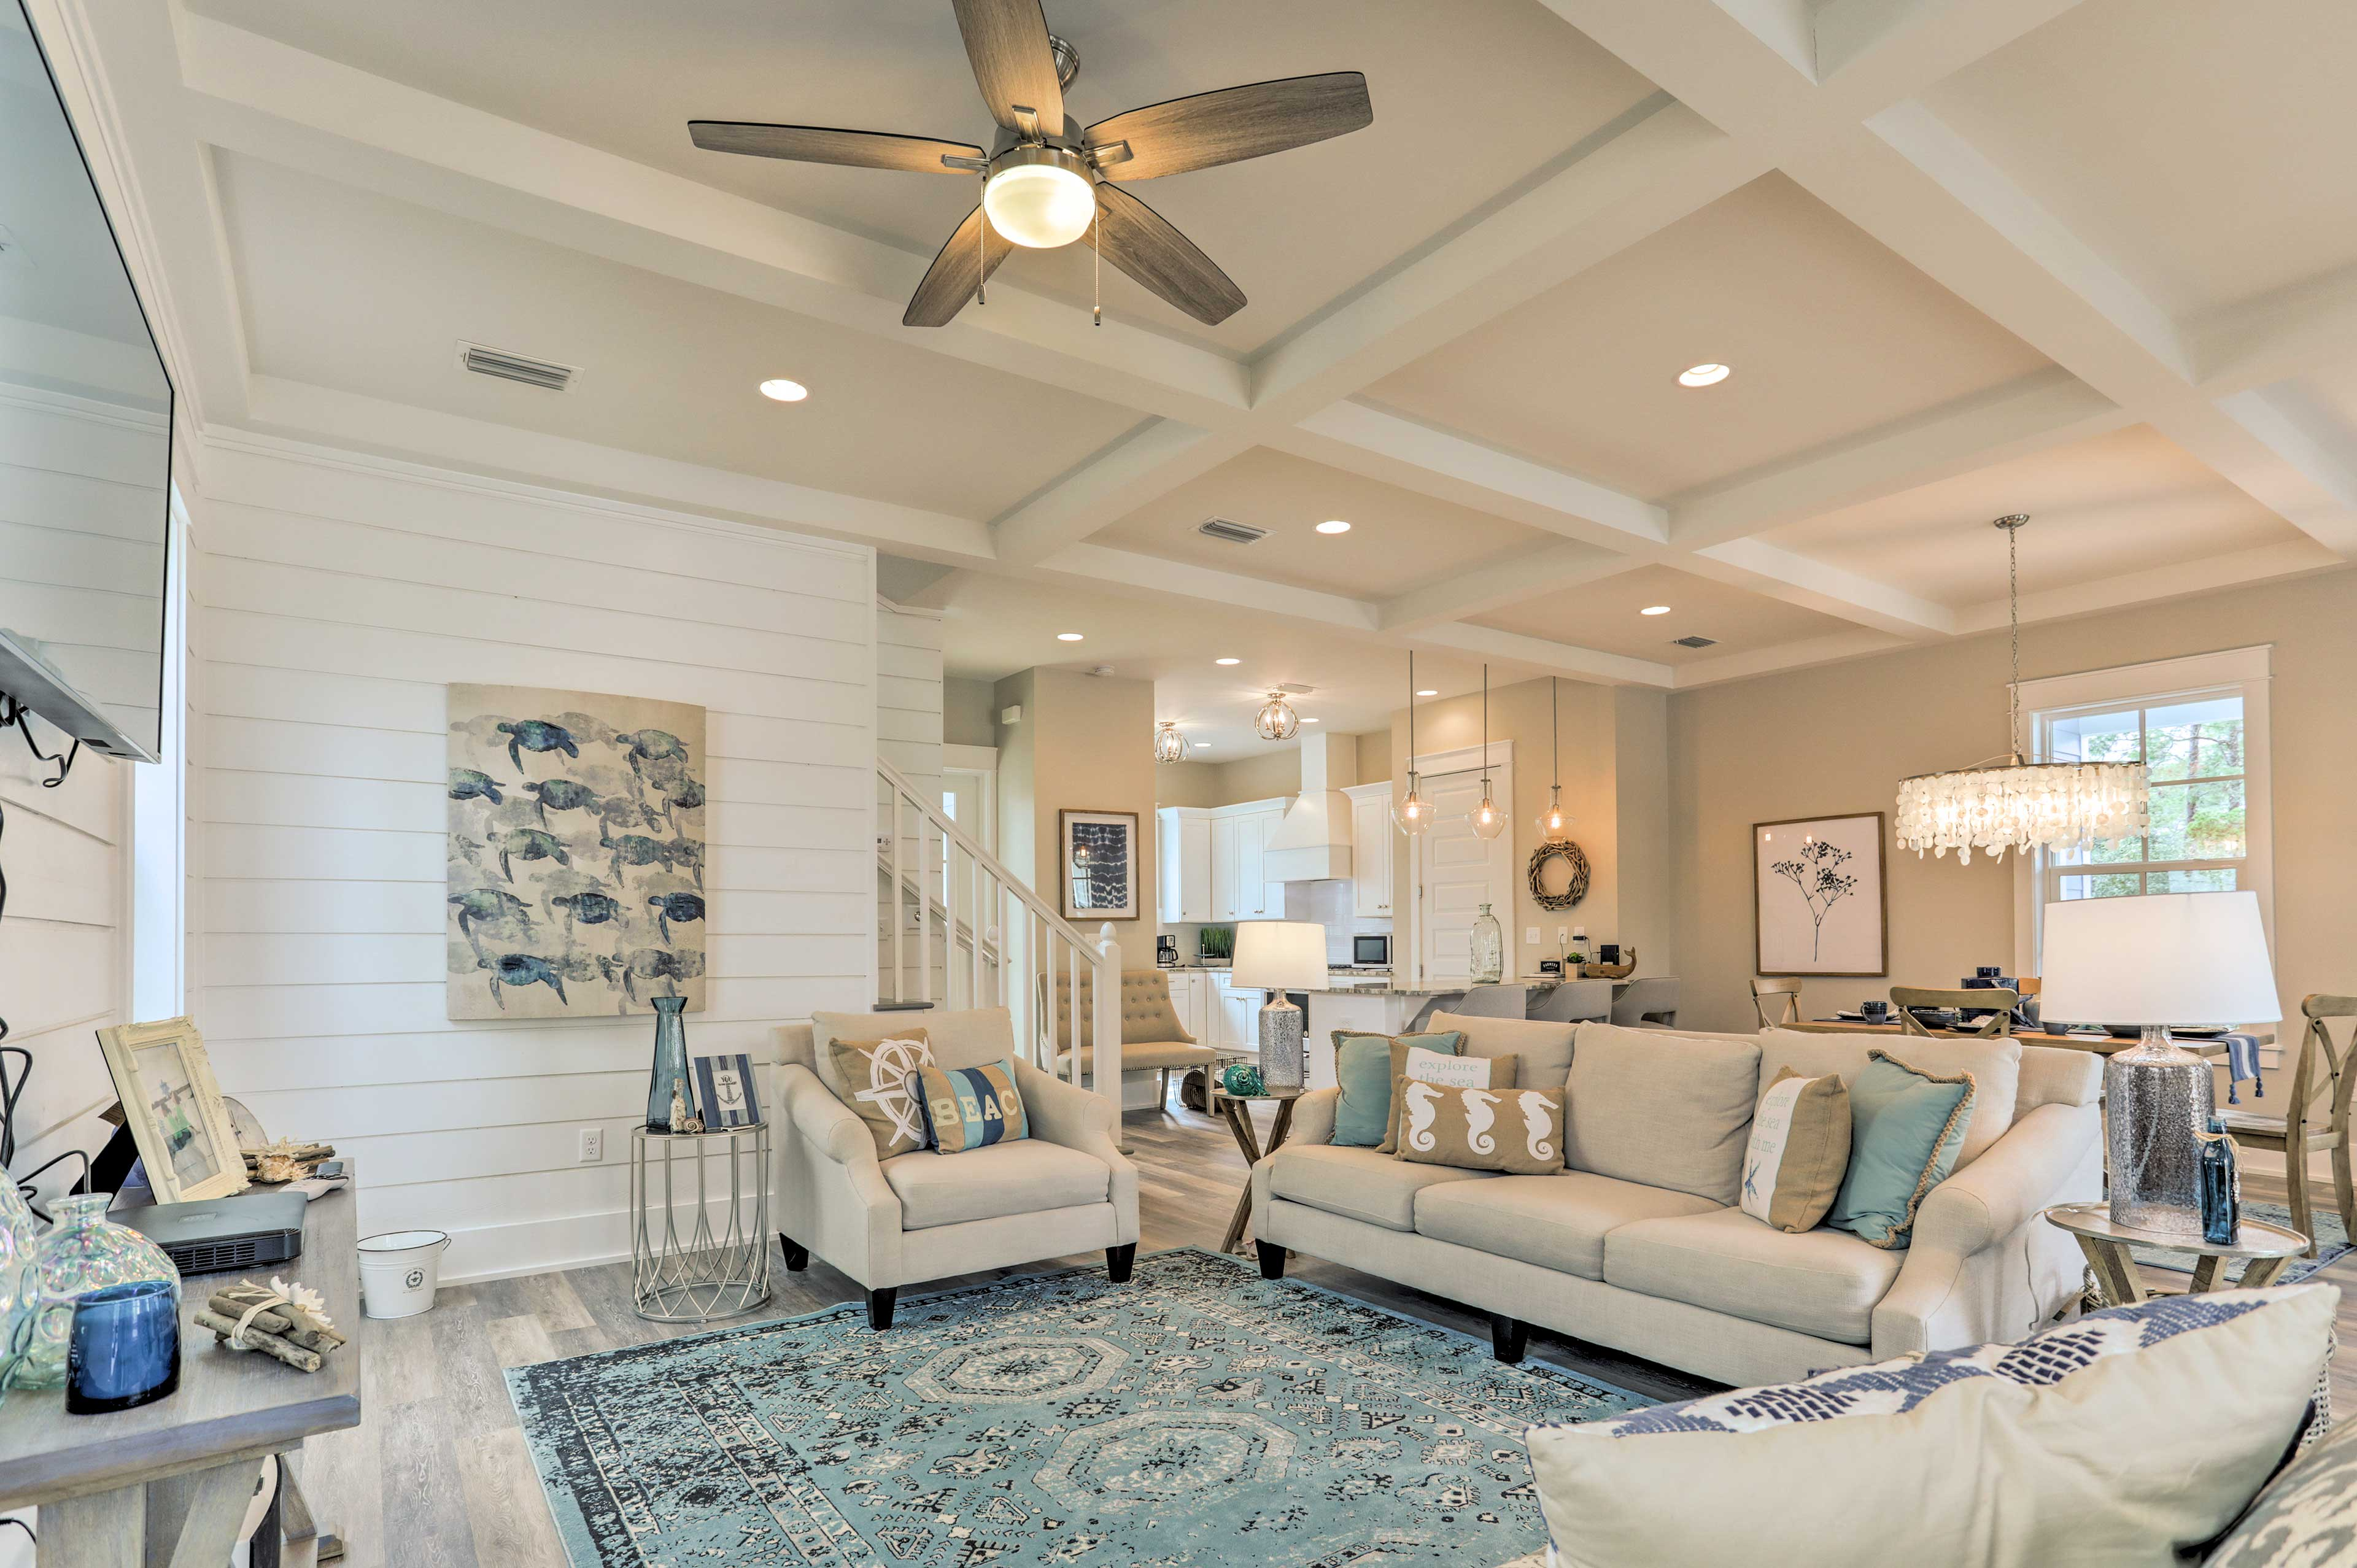 Settle in and spread out throughout 2,250 square feet of gorgeous living space.